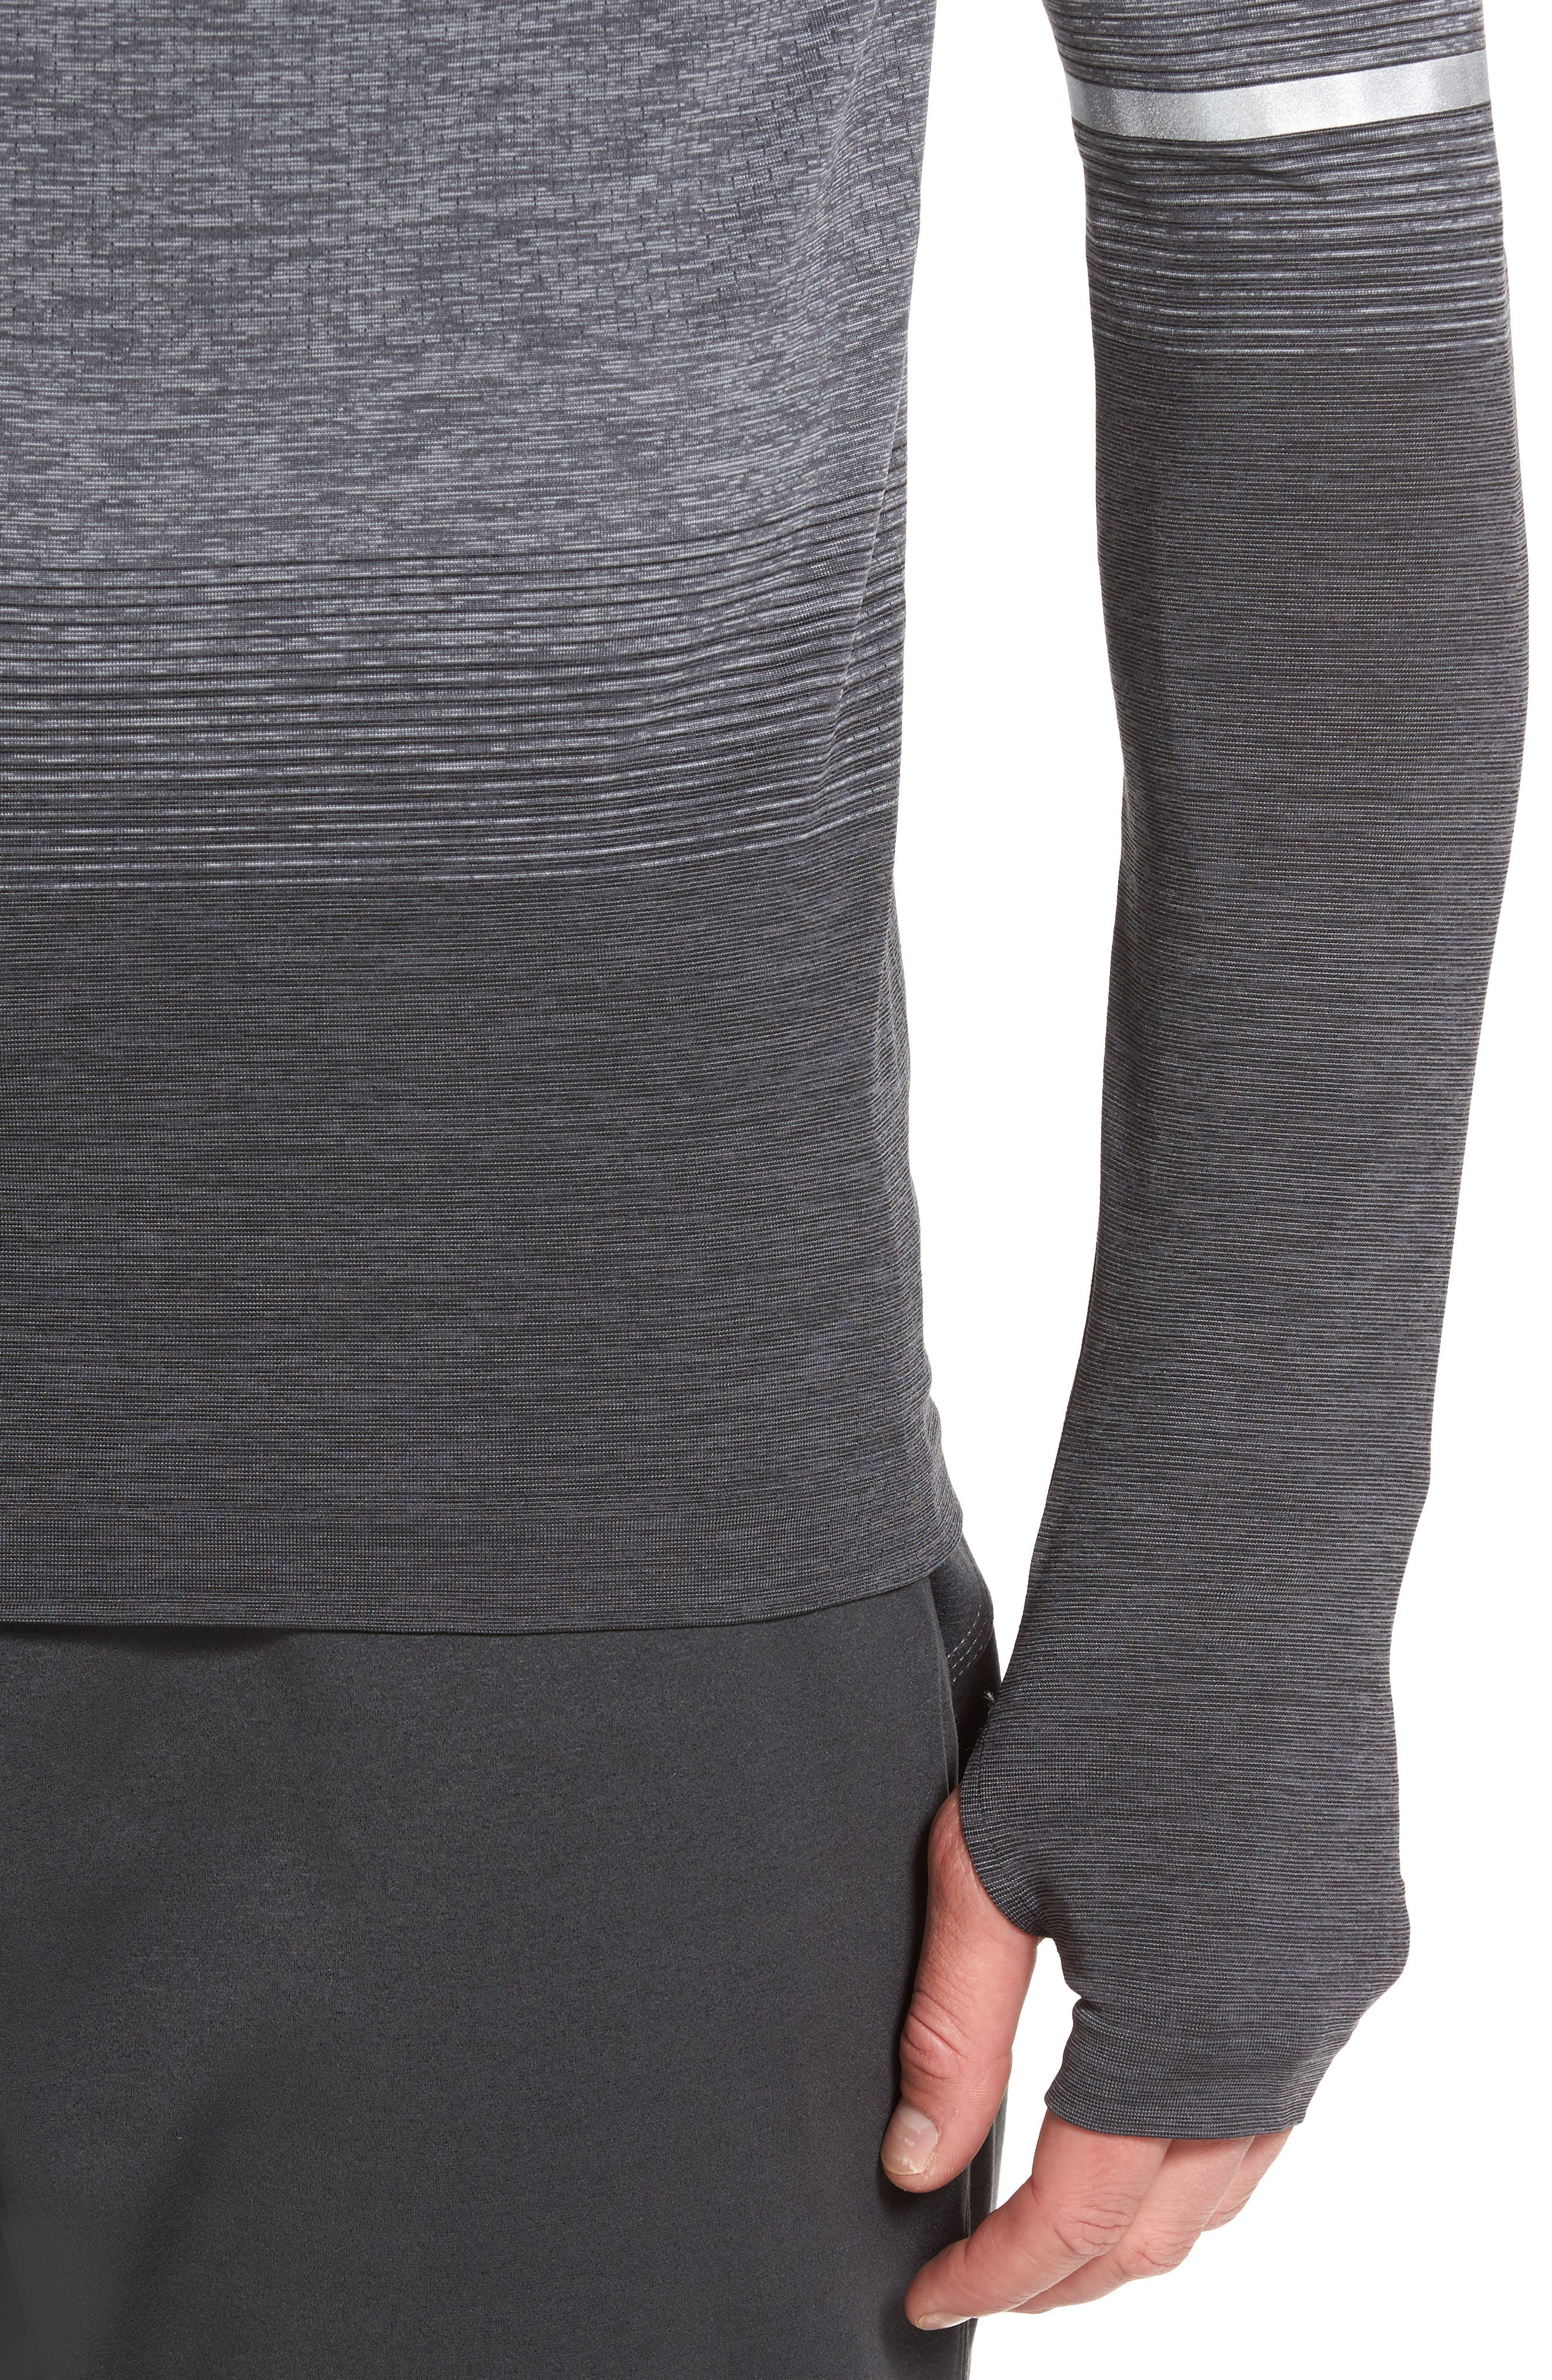 Dry Running Mock Neck Long Sleeve T-Shirt,                             Alternate thumbnail 4, color,                             ANTHRACITE/ WOLF GREY/ GREY